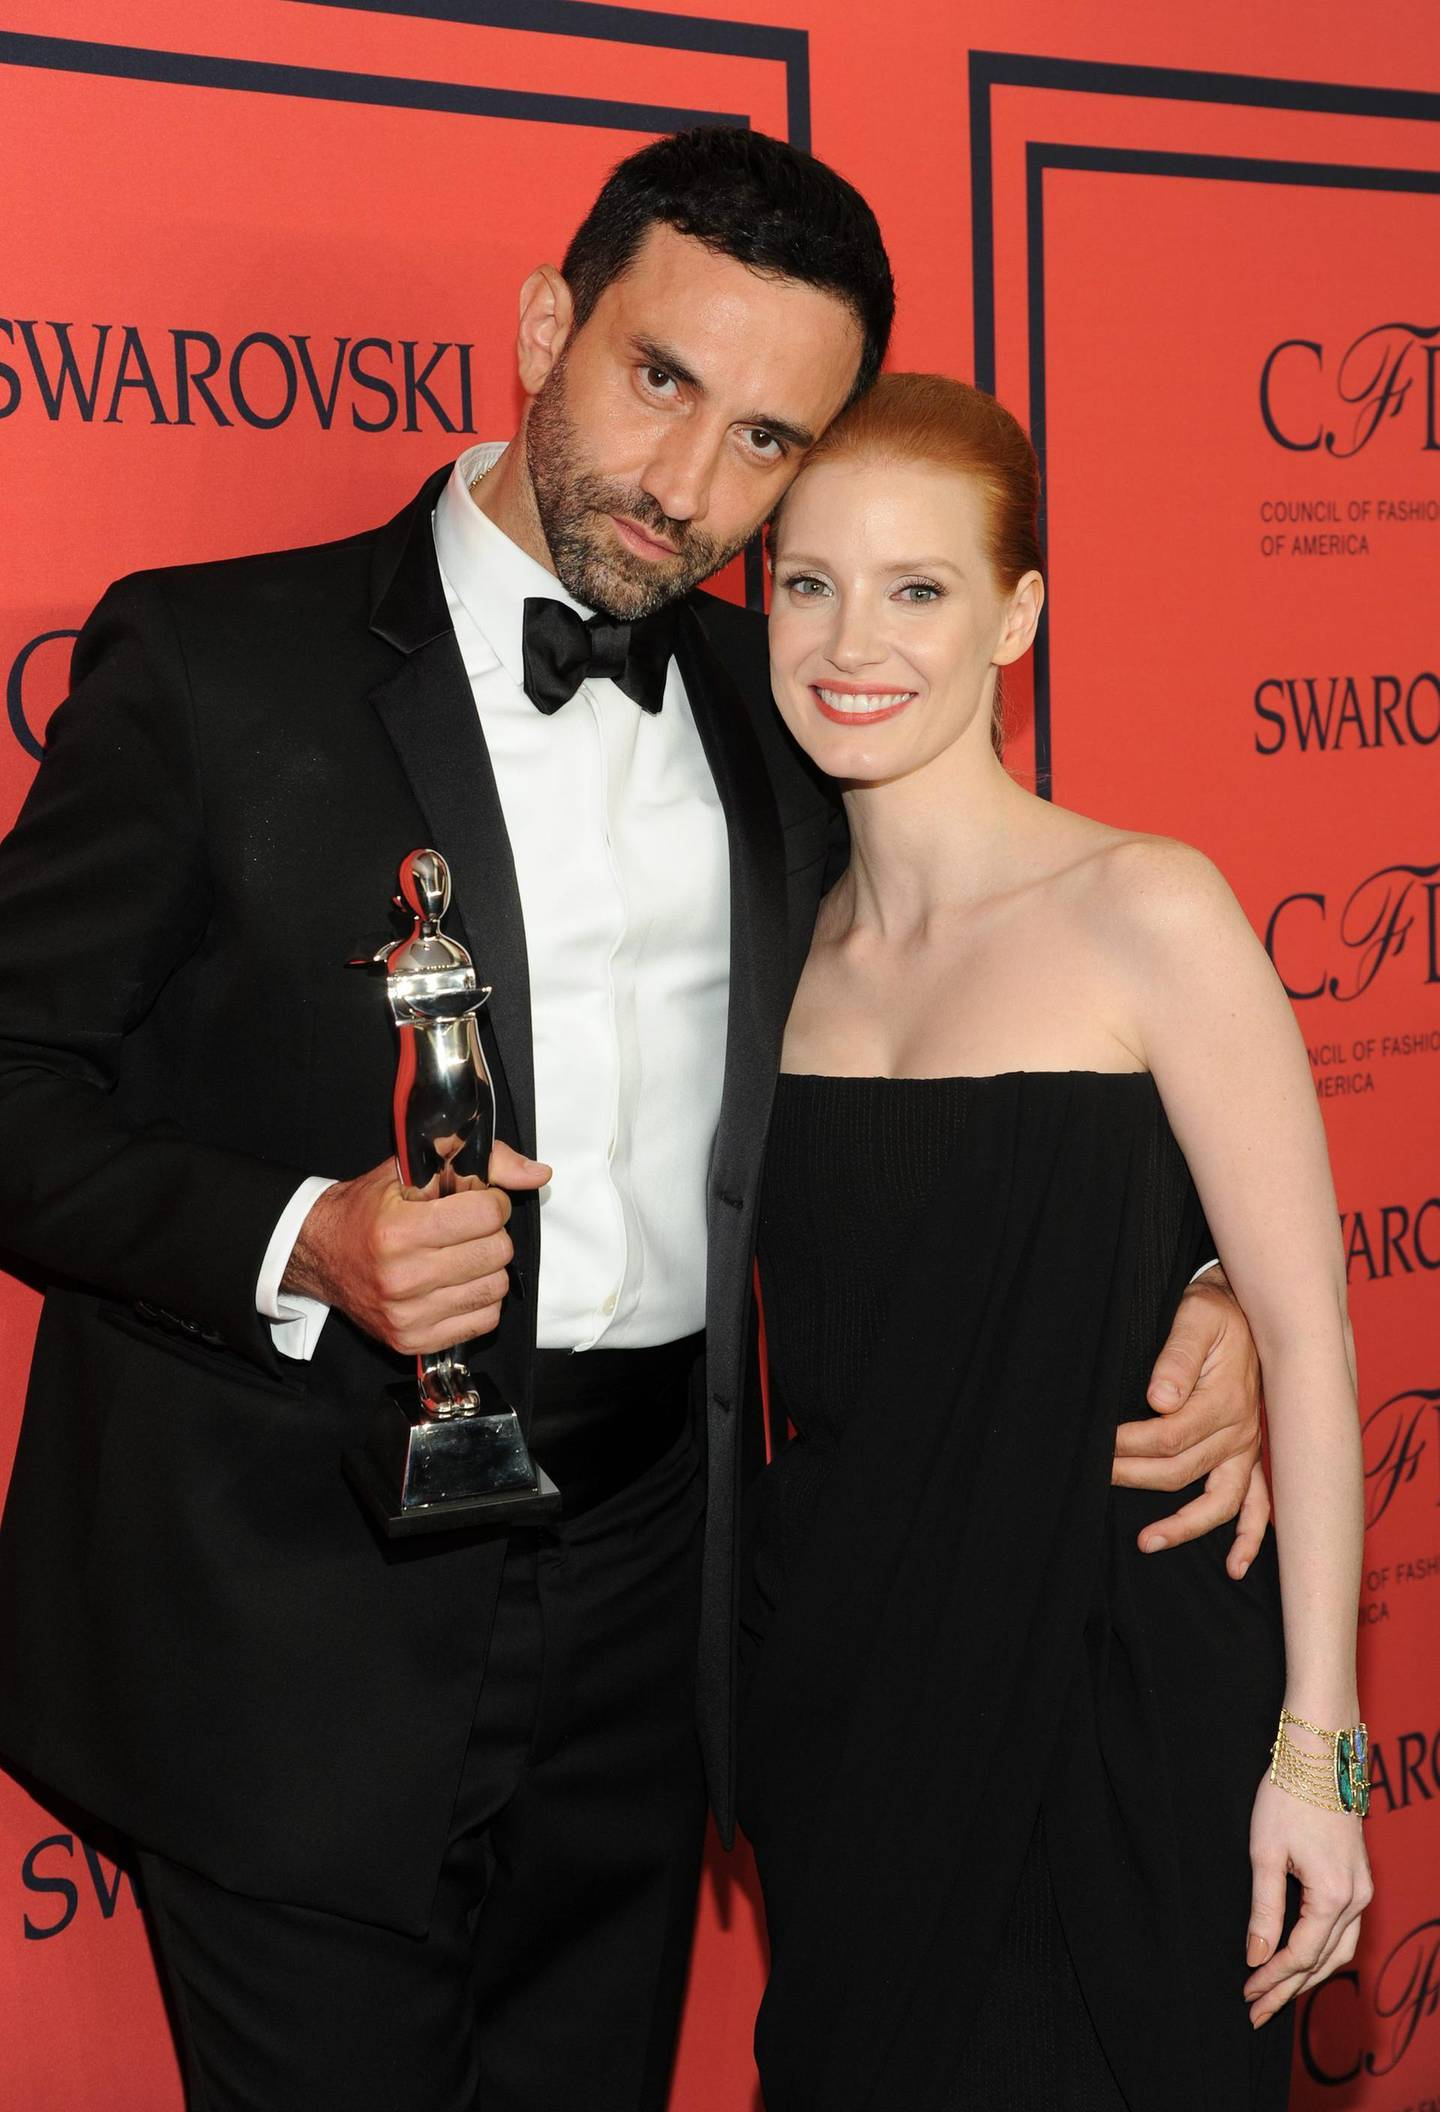 International Award honoree Riccardo Tisci, left, and actress Jessica Chastain pose in the press room at the 2013 CFDA Fashion Awards at Alice Tully Hall on Monday, June 3, 2013 in New York. (Photo by Evan Agostini/Invision/AP) *** Local Caption ***  2013 CFDA Fashion Awards Press Room.JPEG-0ccb2.jpg